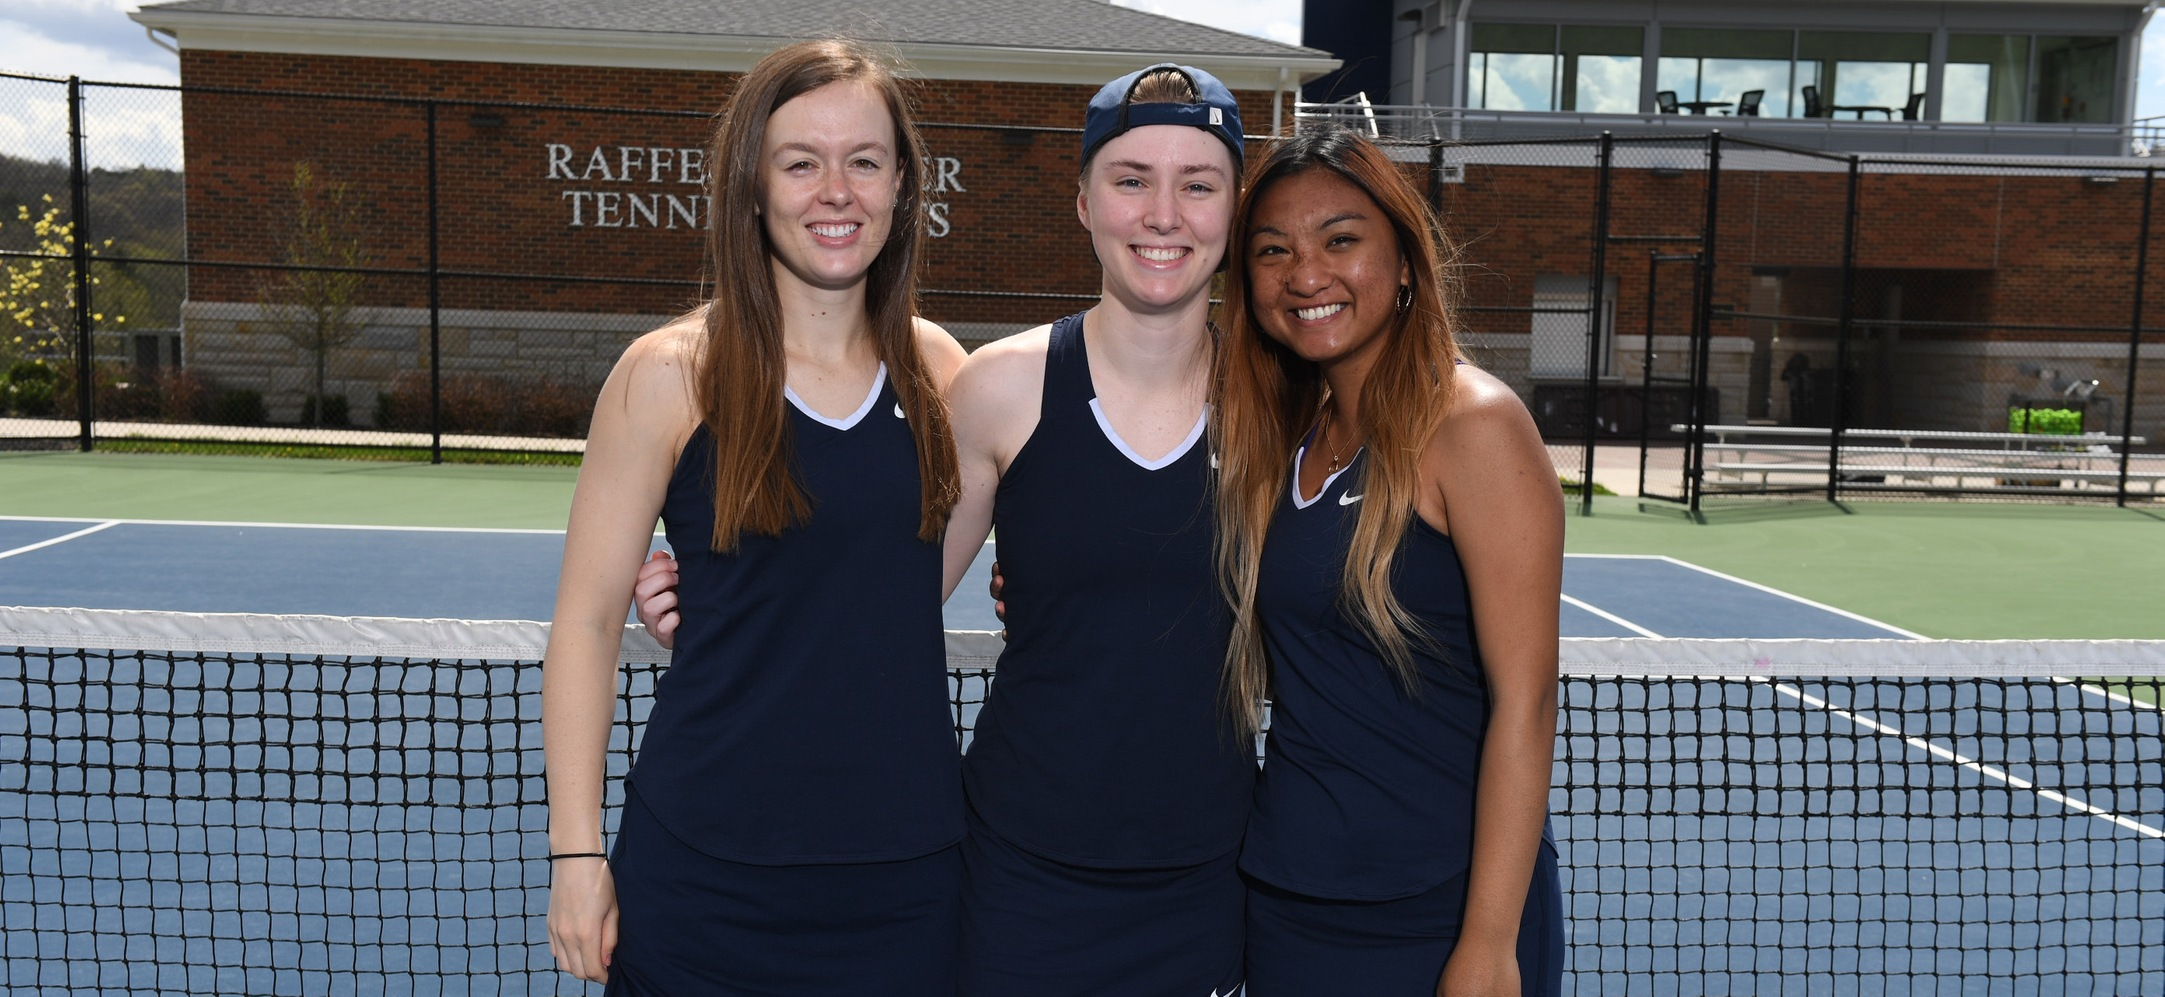 Women's Tennis Drops Match vs. Goucher on Senior Day